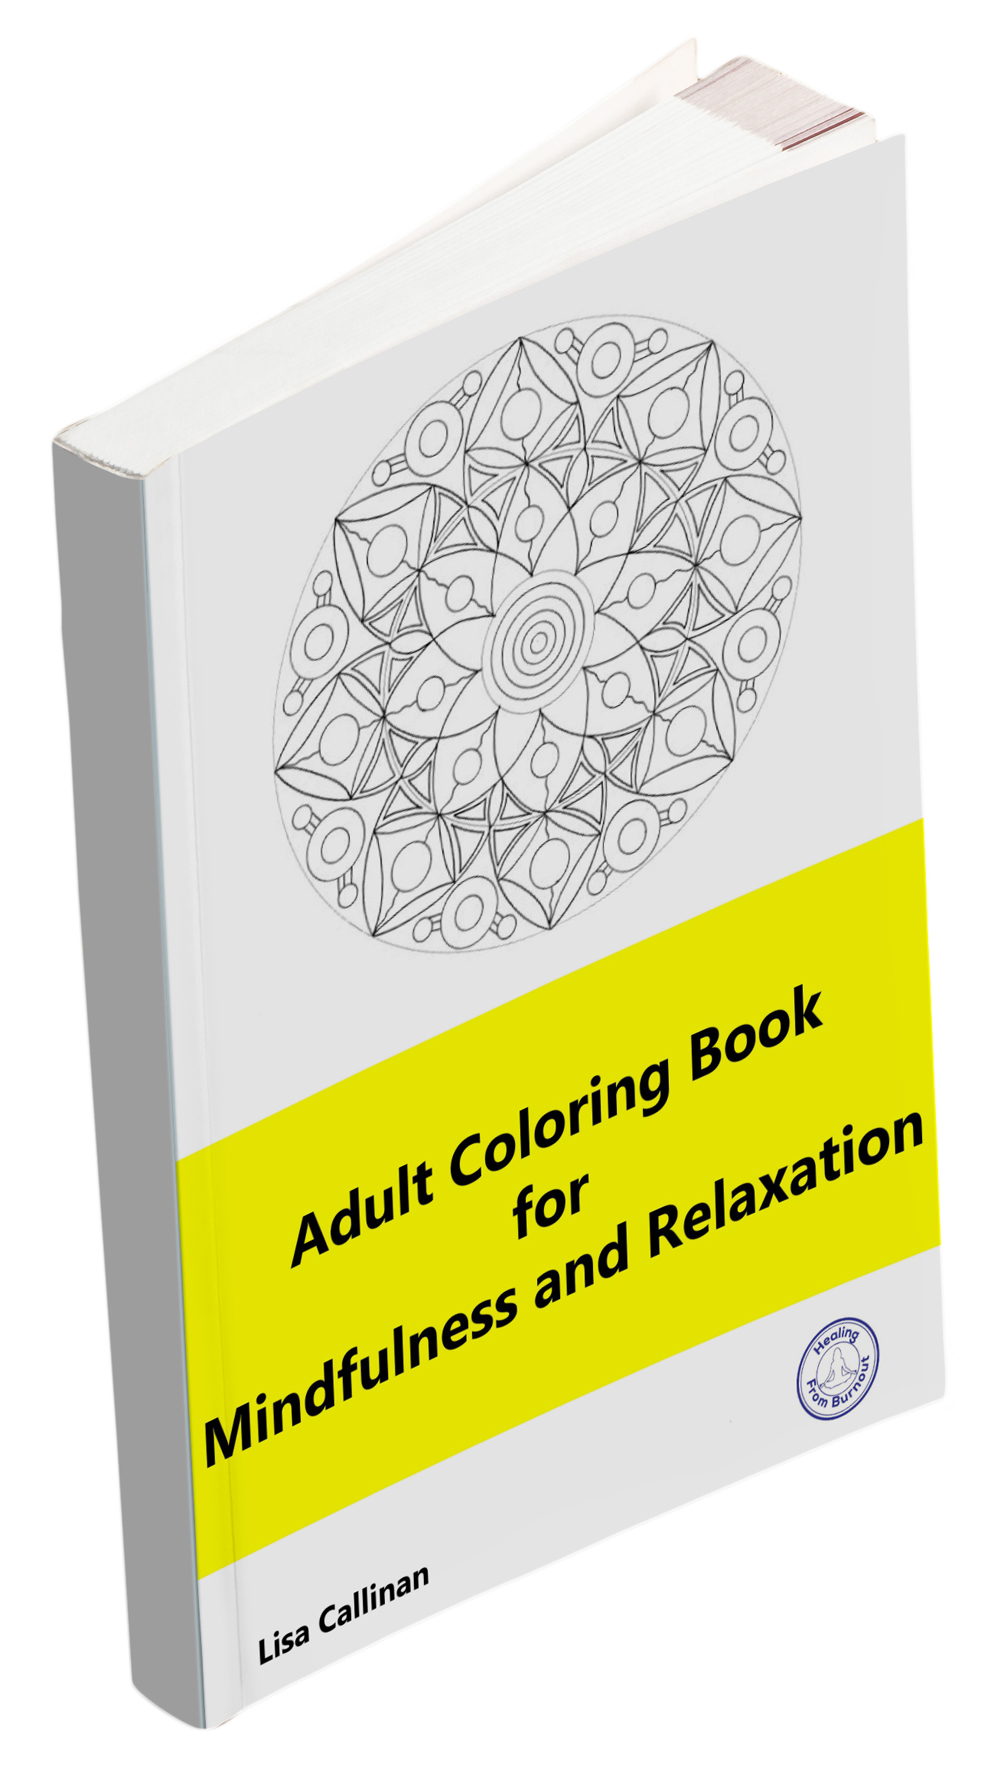 Adult Coloring Book for Mindfulnes and Relaxation.